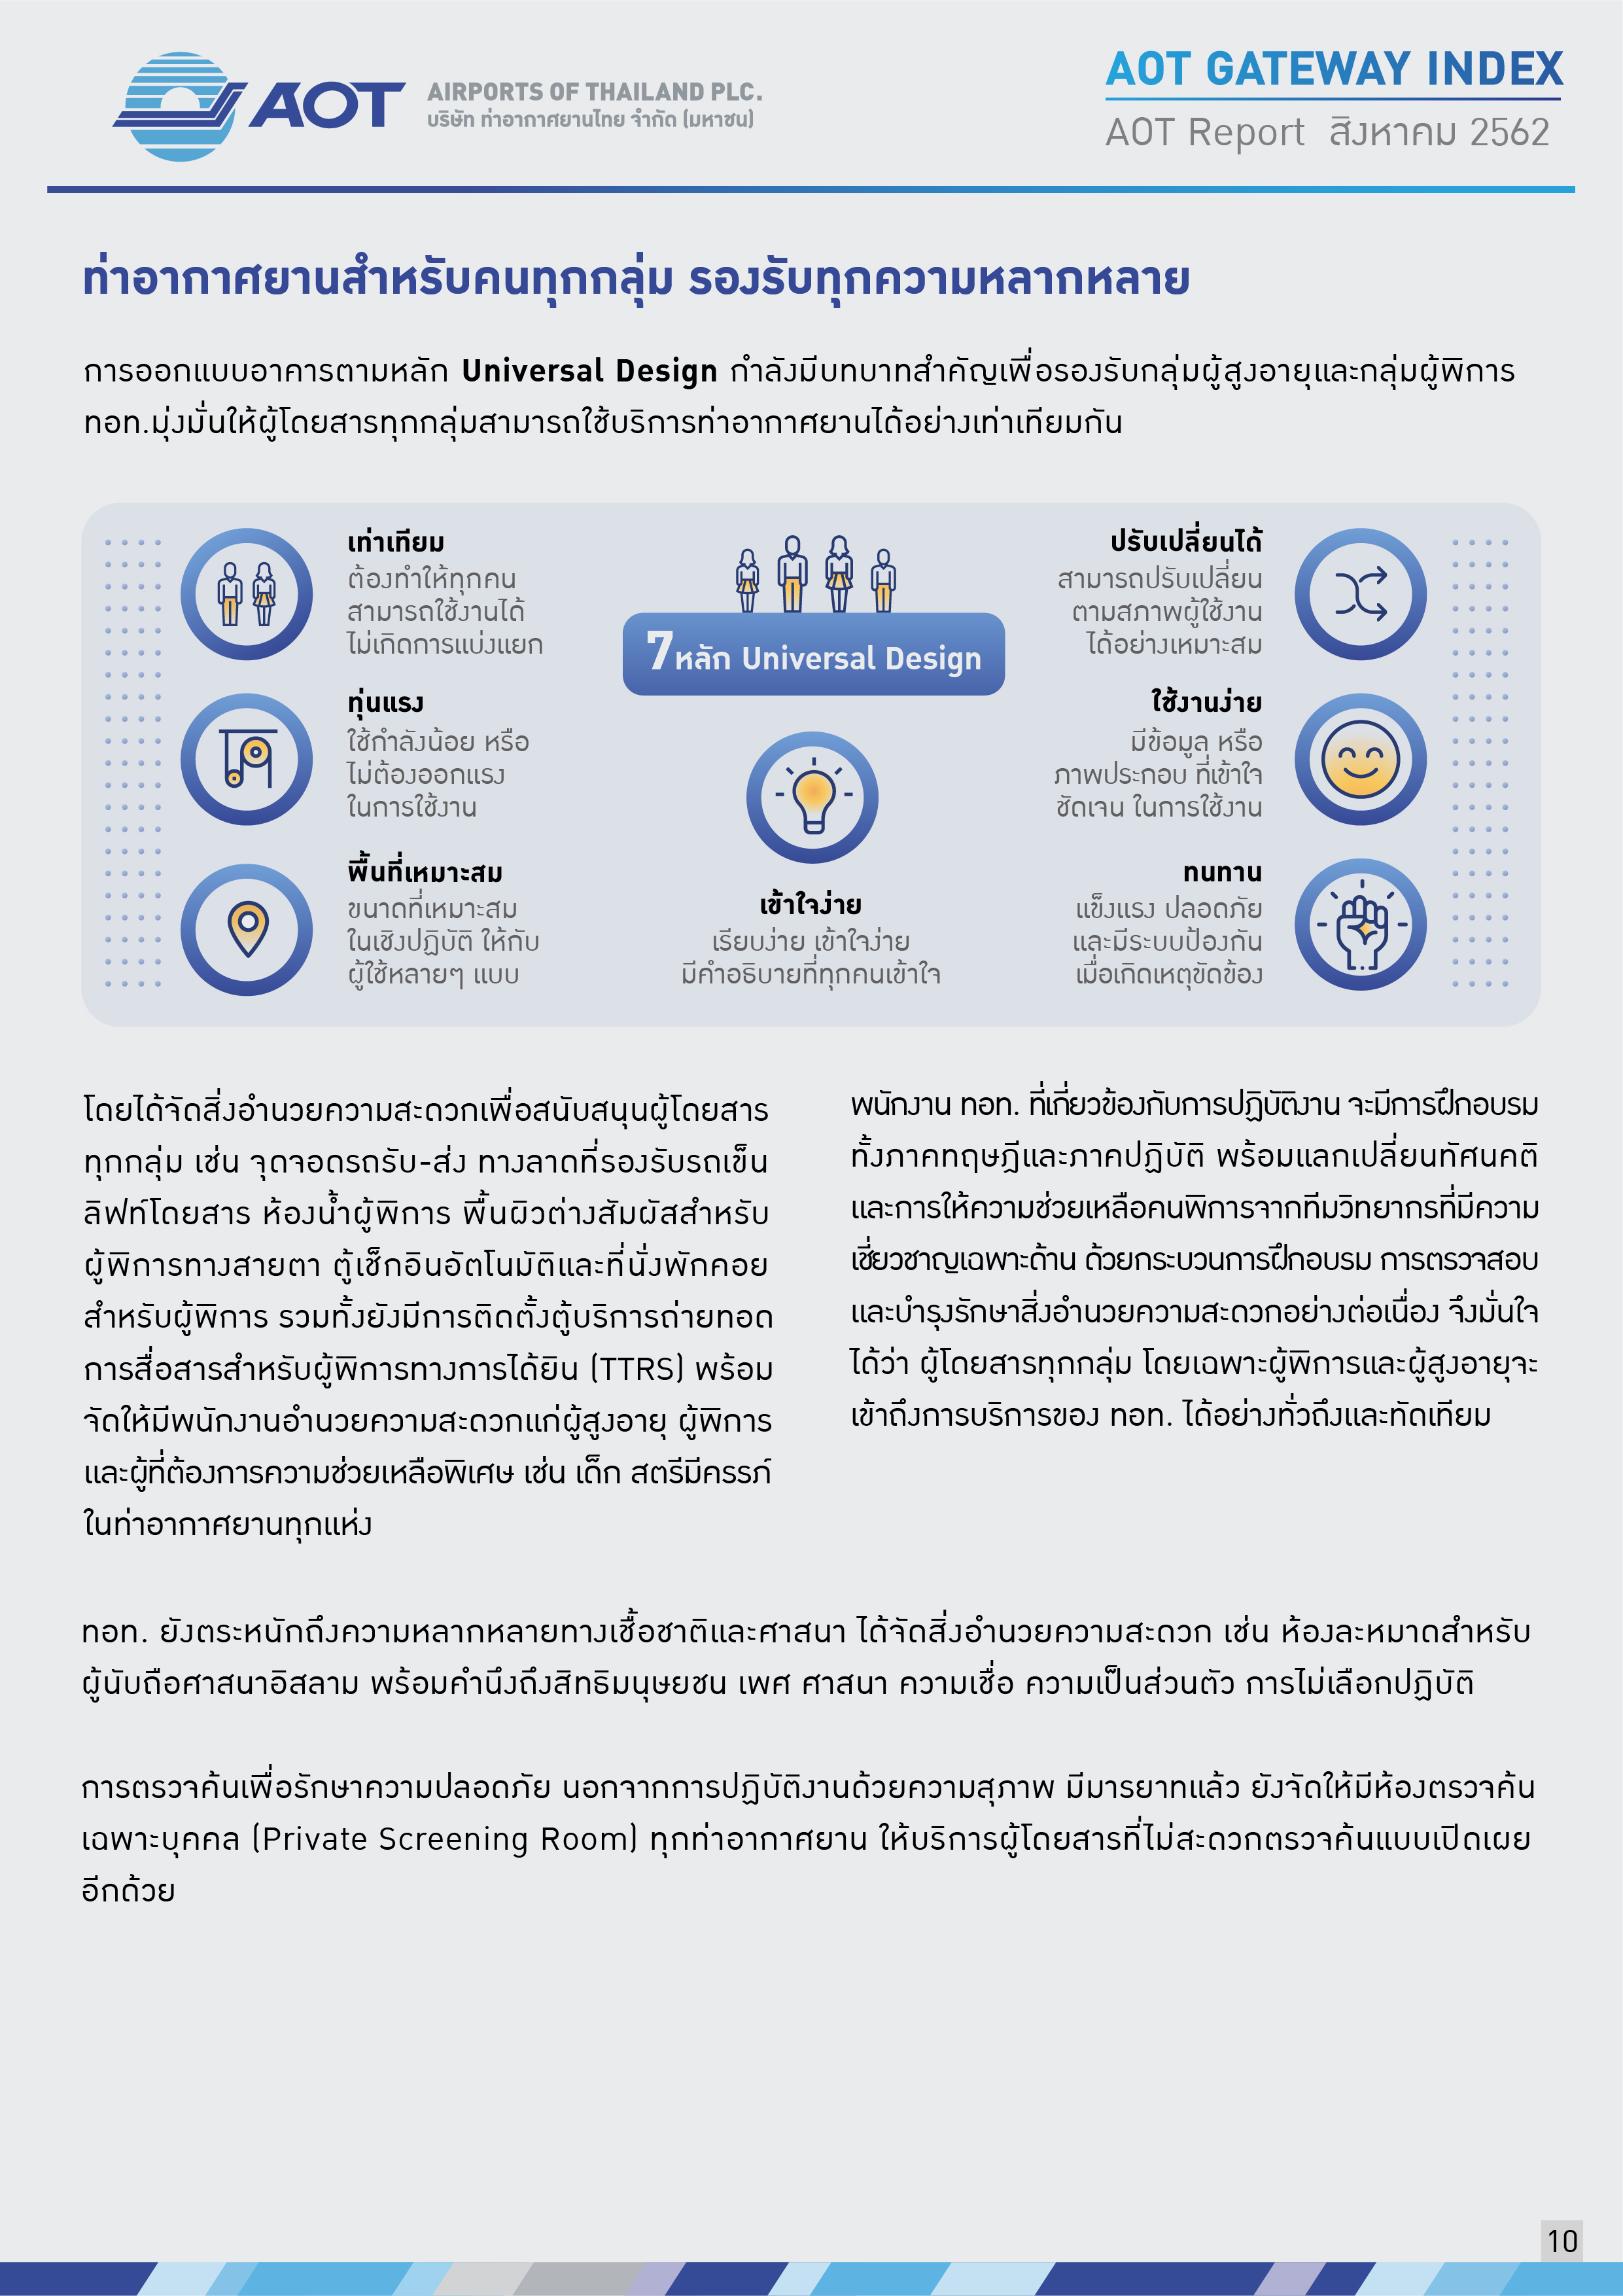 AOTcentent2019_Index 09_AOT เคียงคู่สังคม_V7_20191031_Page10